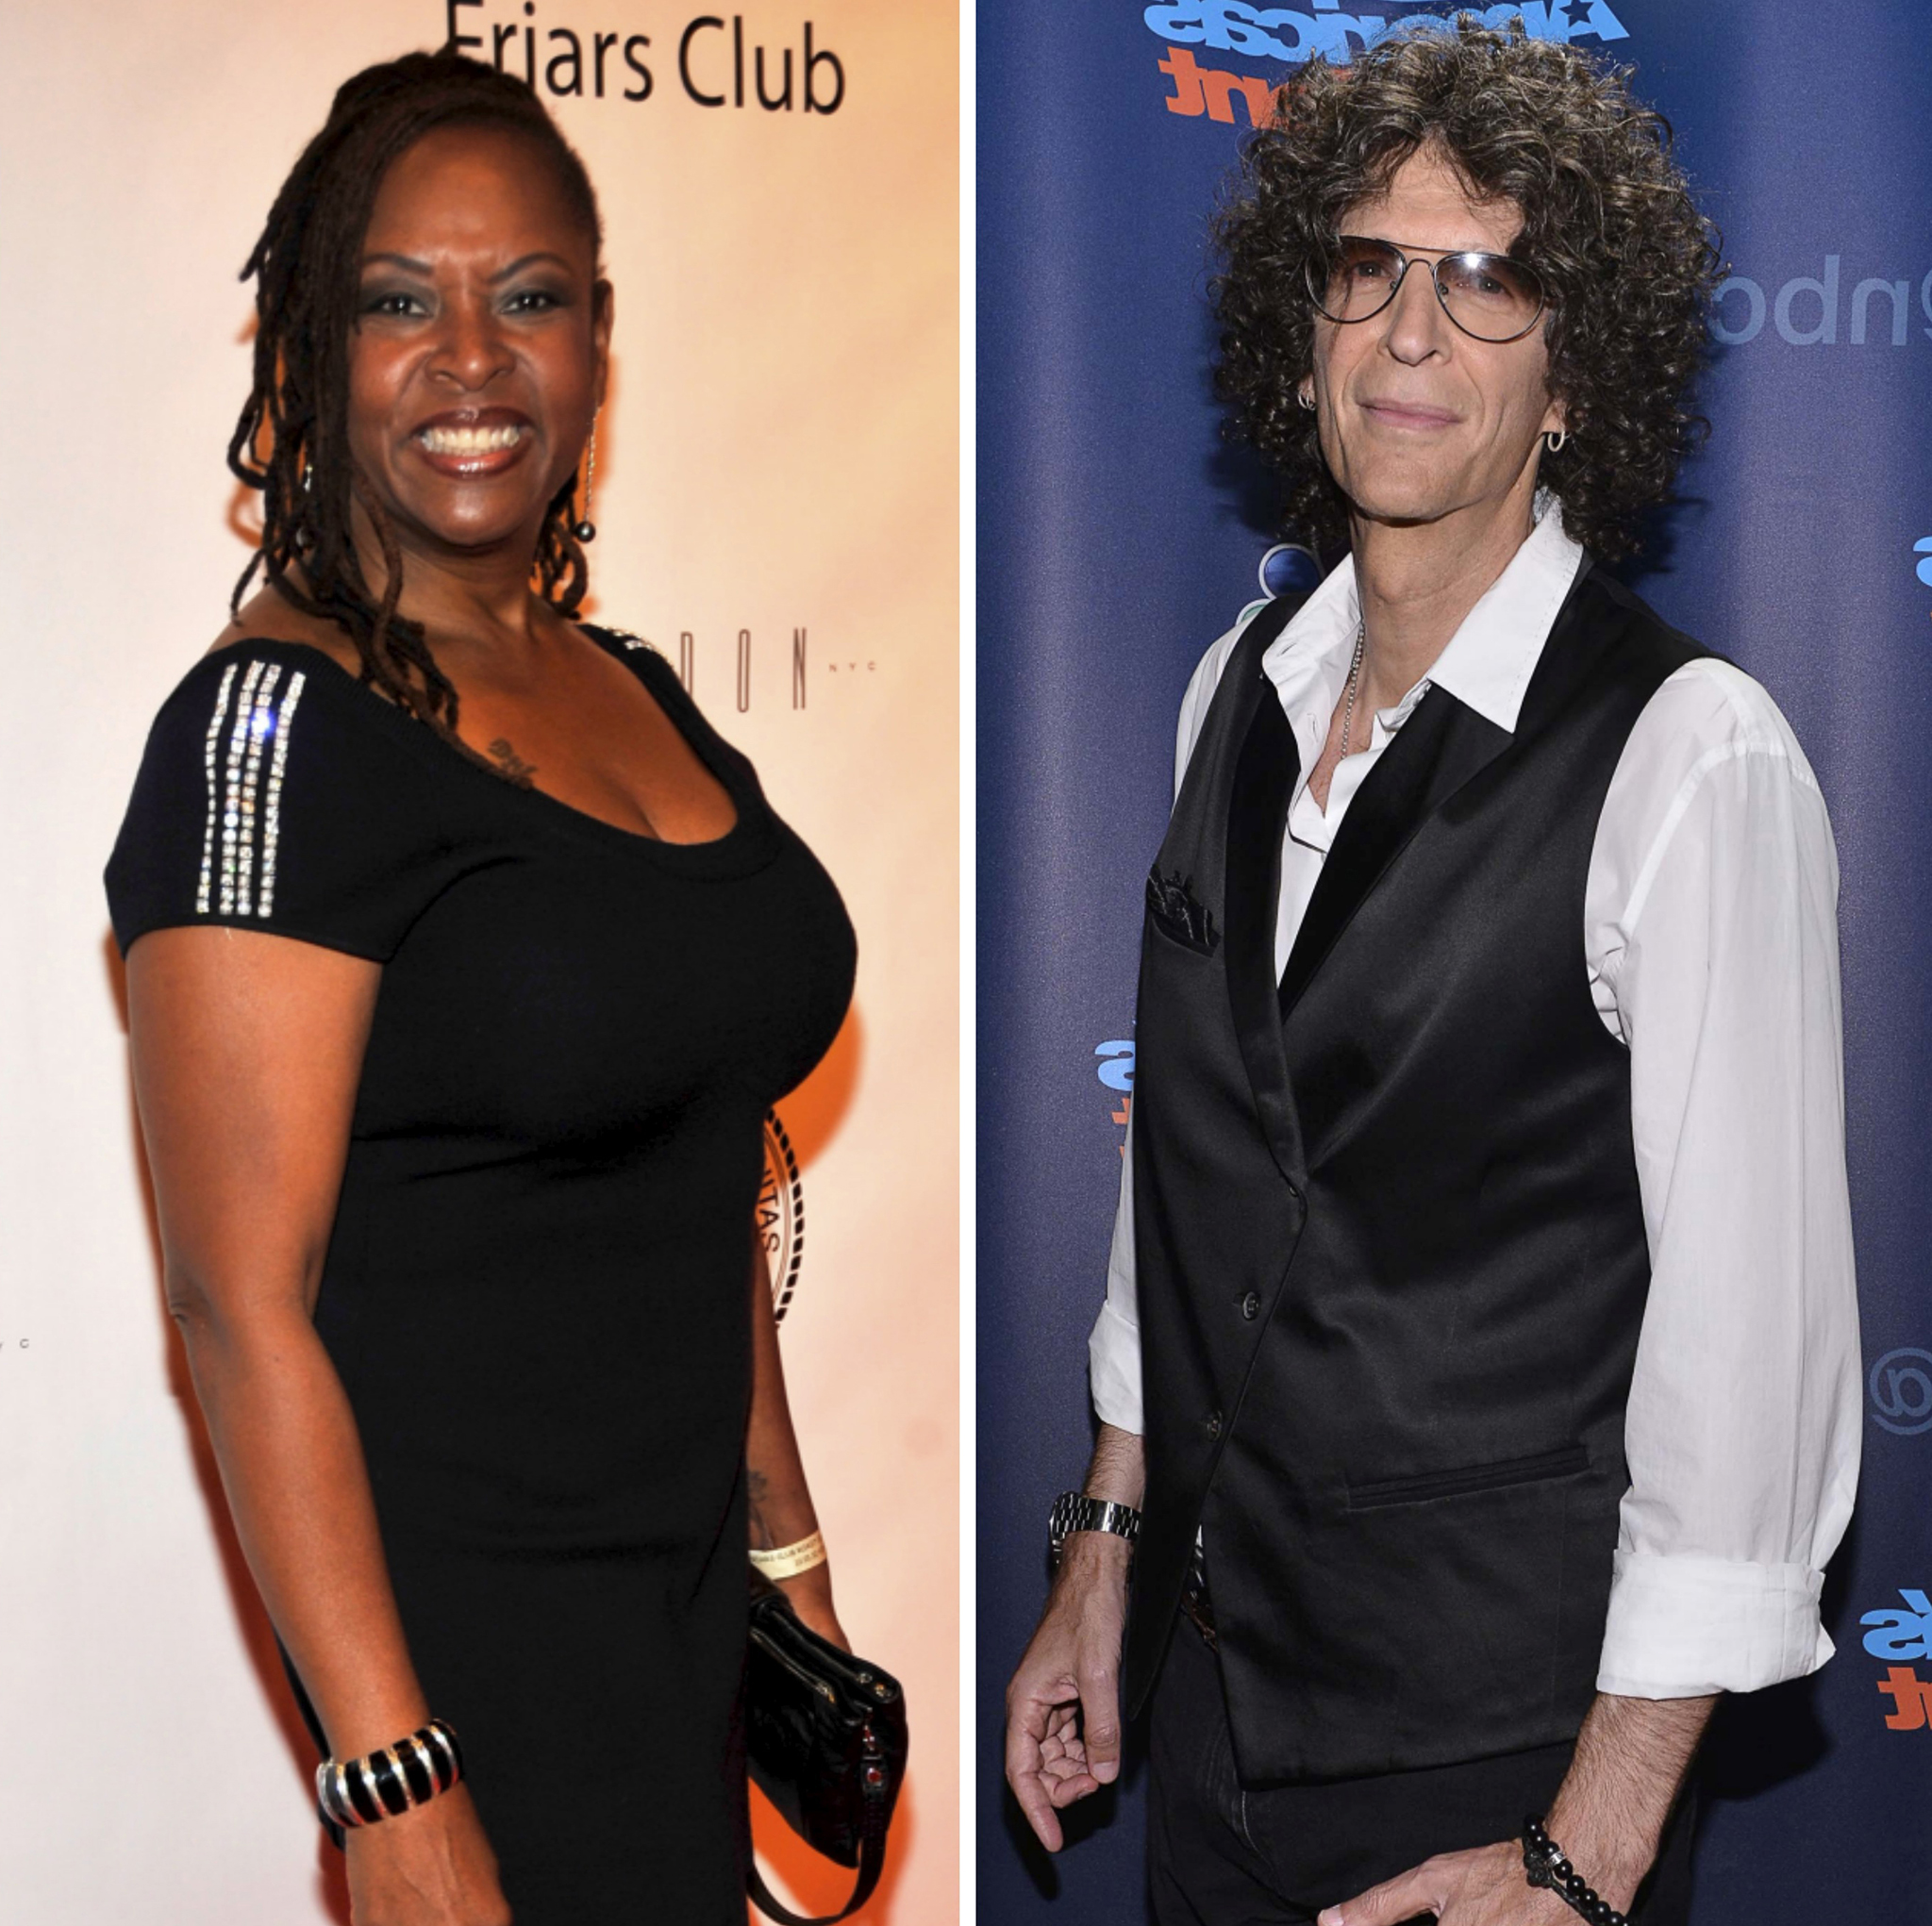 Robin Quivers and Howard Stern (Getty Images)